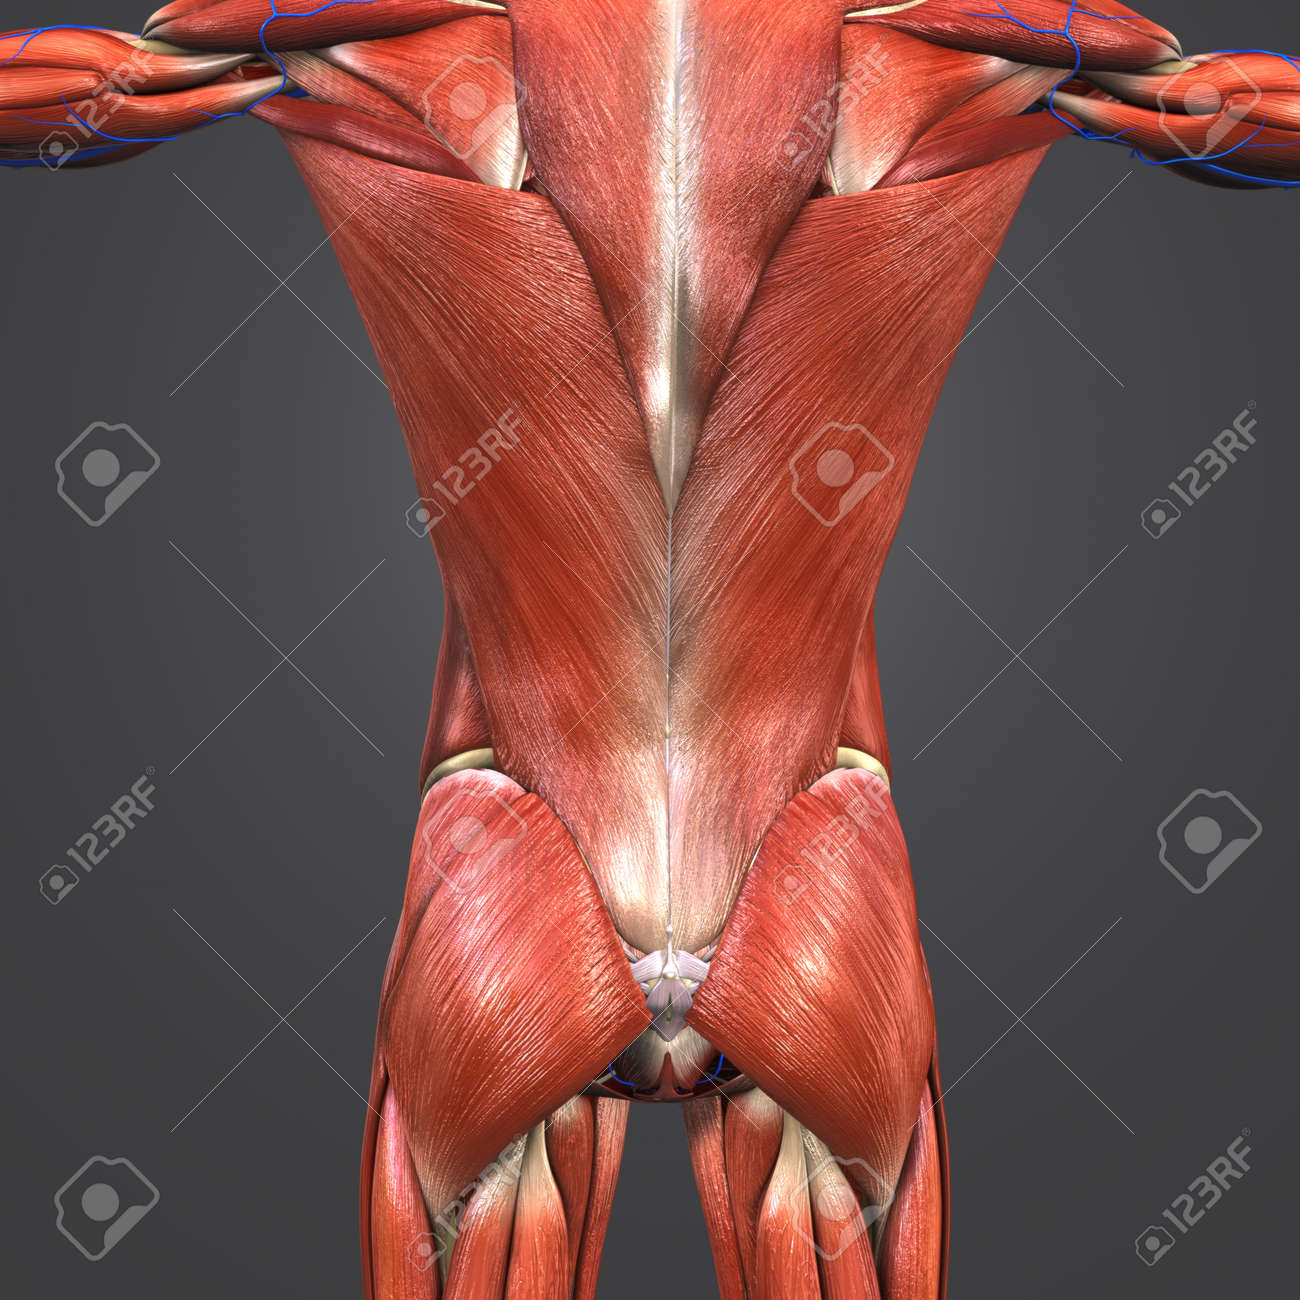 Muscles And Bones At Vertebral Column With Veins Stock Photo